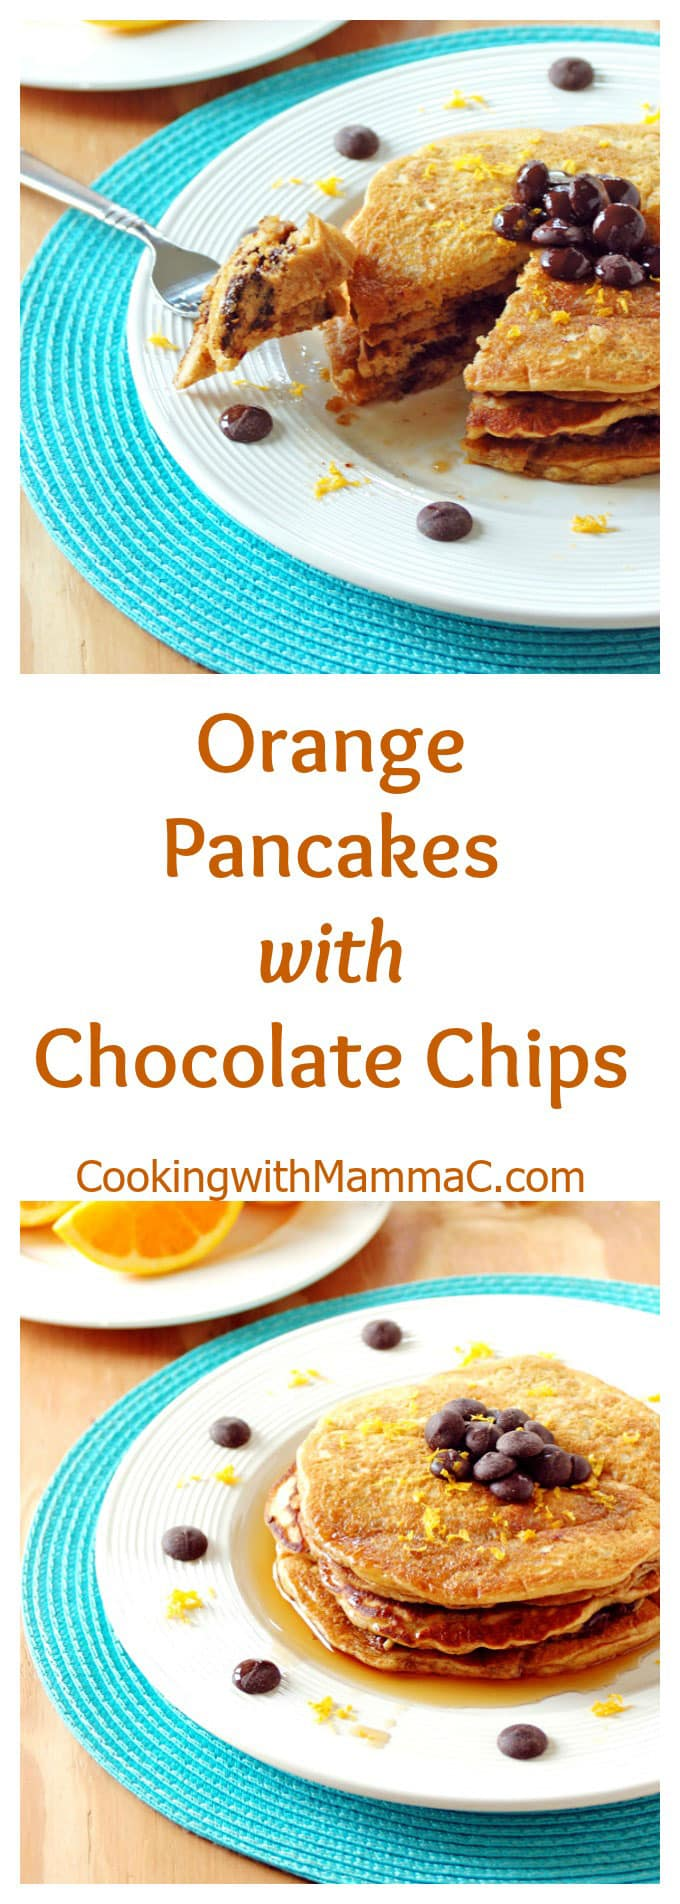 pinnable collage image of chocolate chip pancakes with orange wedges